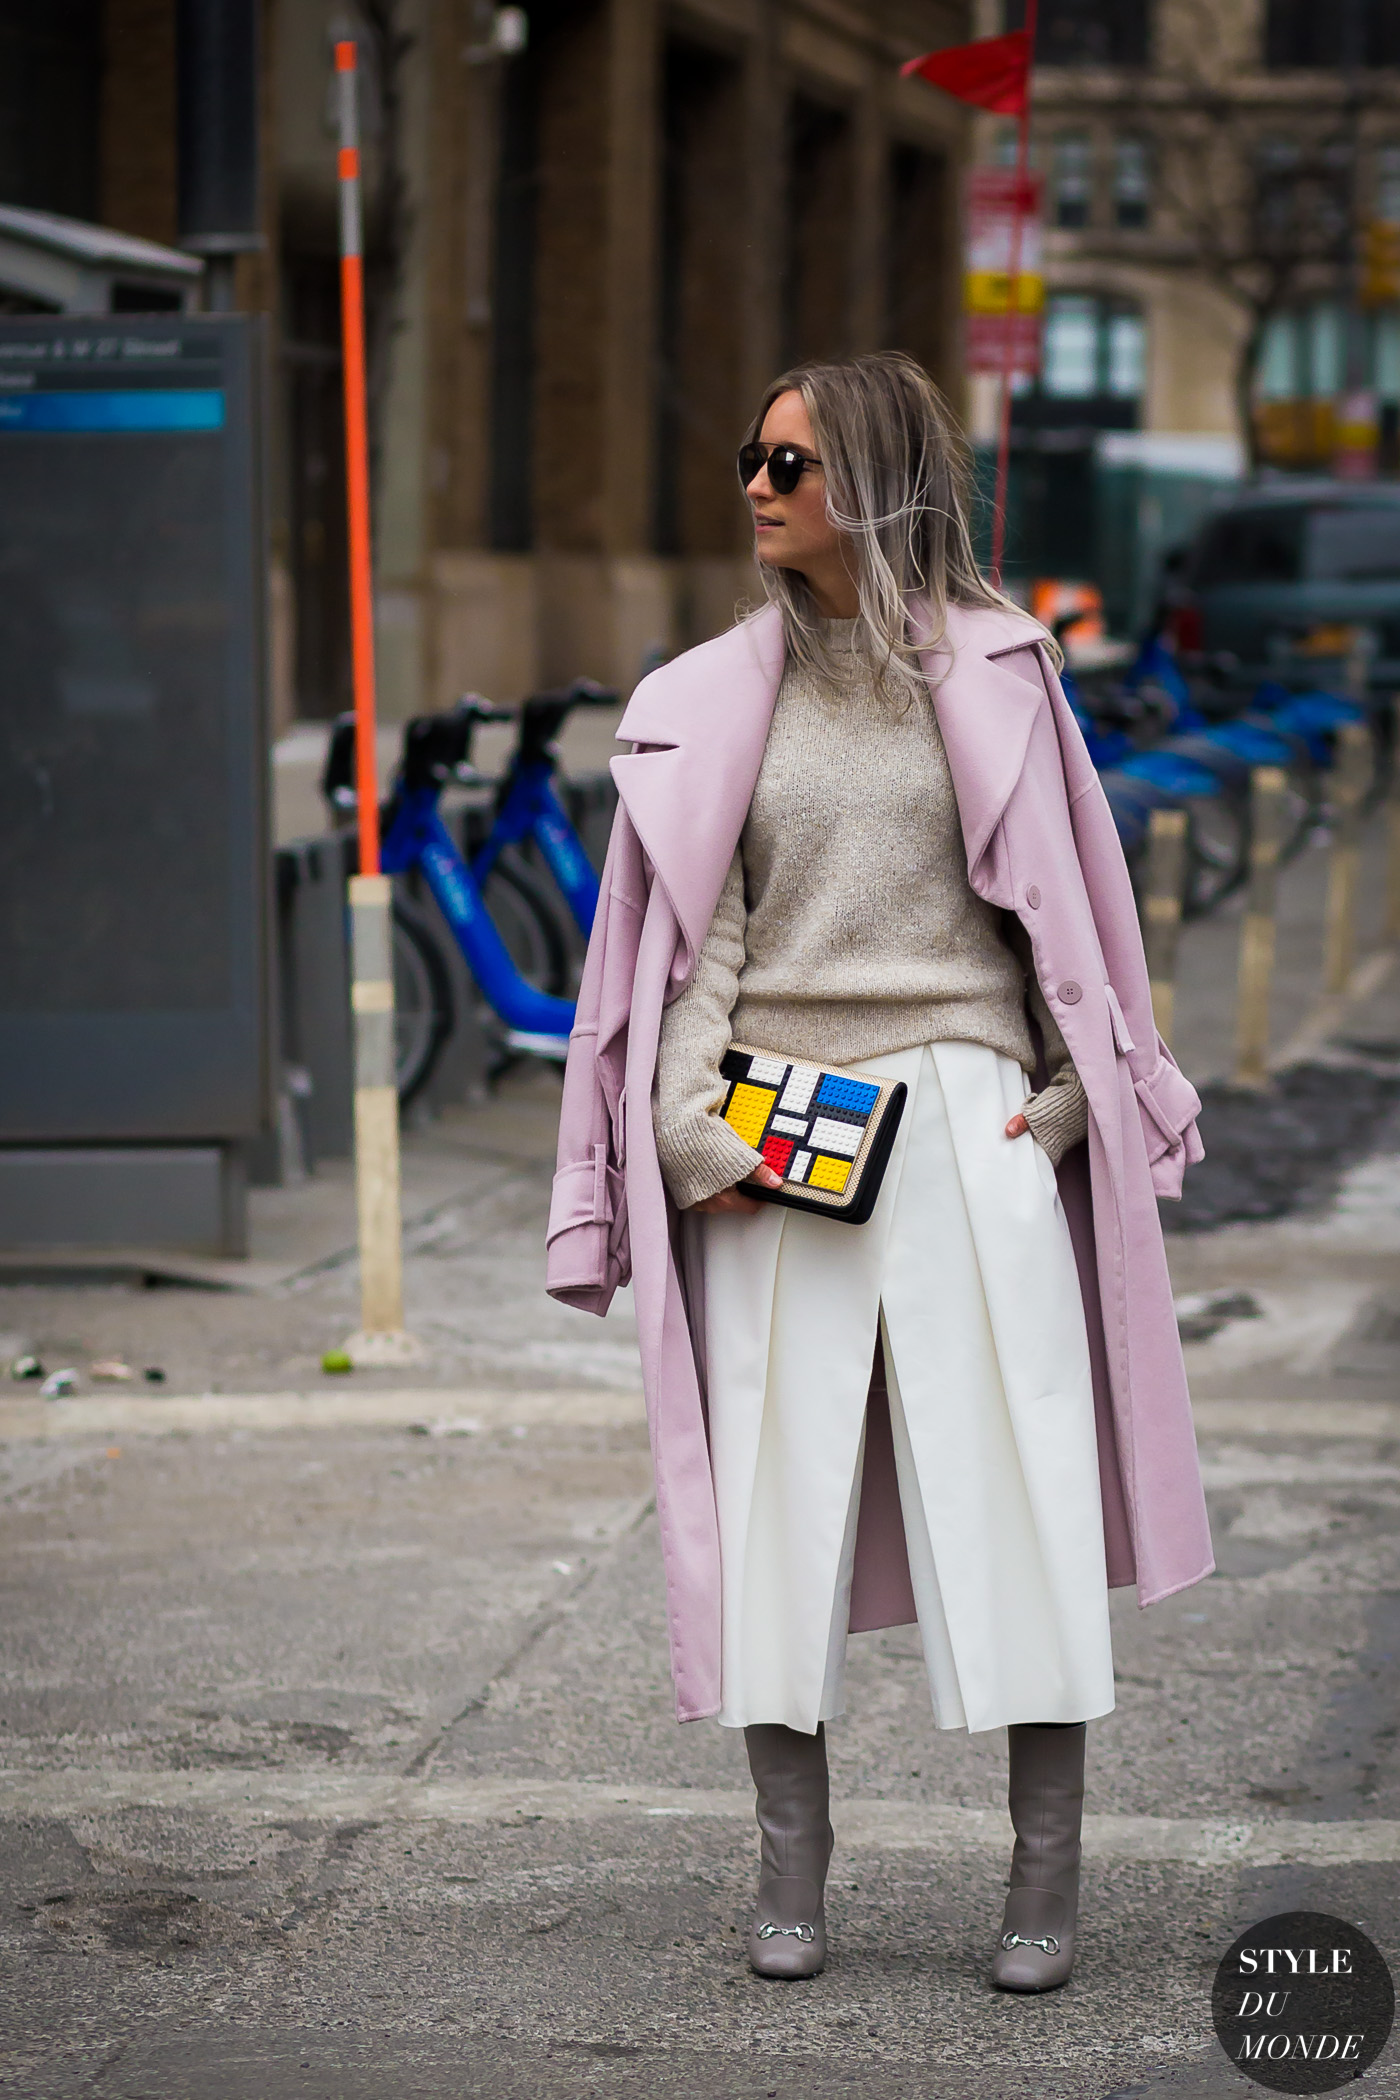 Charlotte Groeneveld Street Style Street Fashion Streetsnaps by STYLEDUMONDE Street Style Fashion Photography